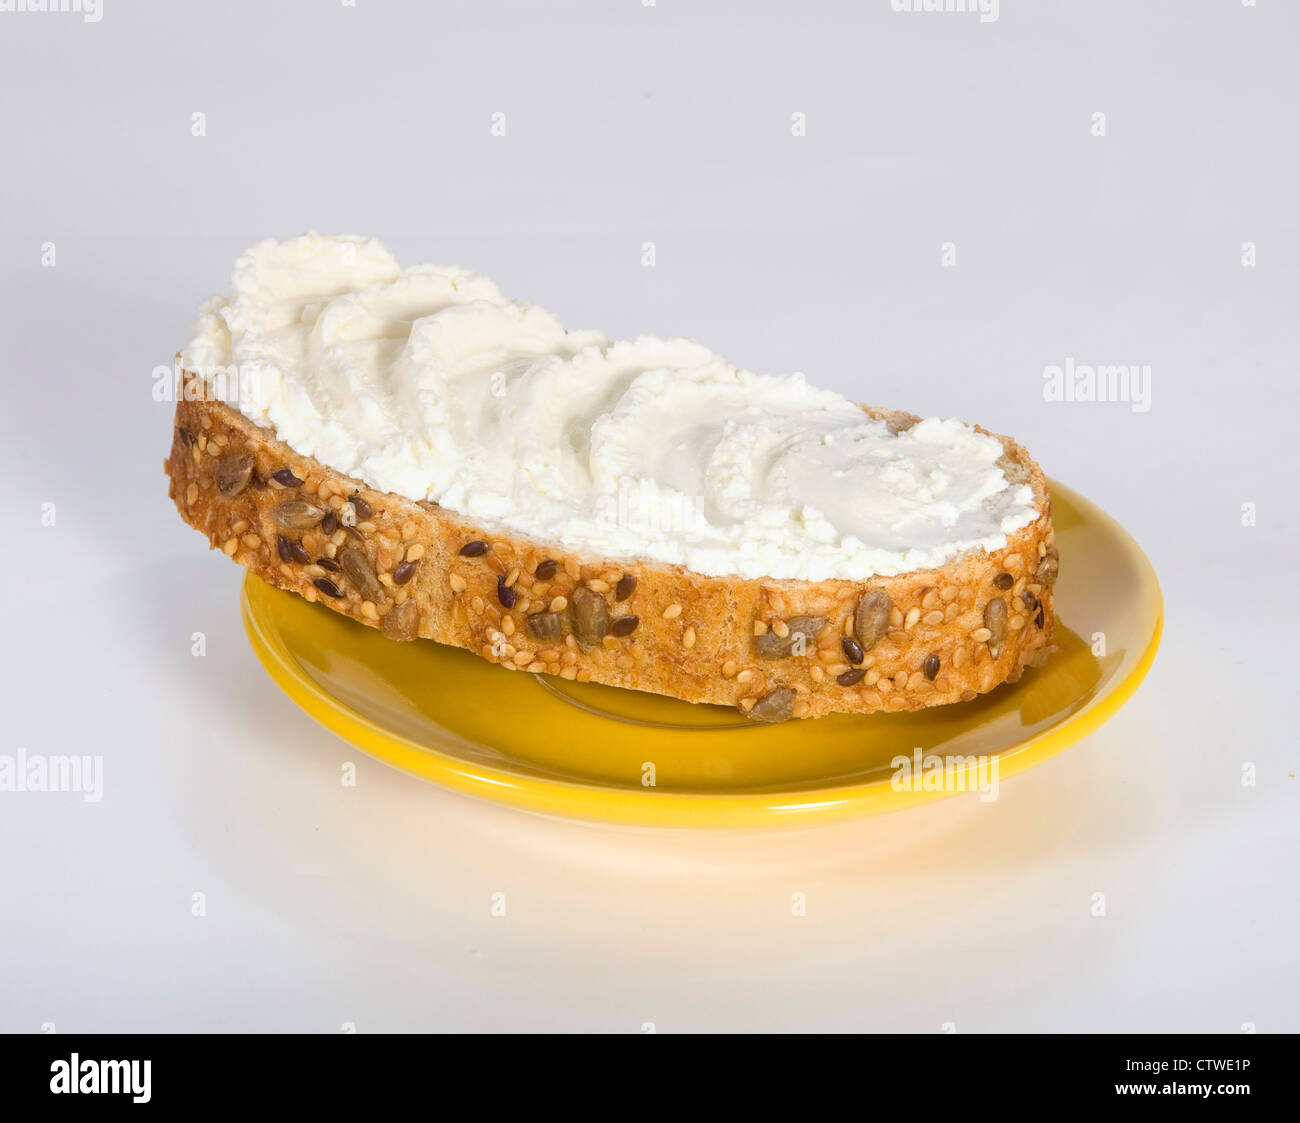 Appetizing sandwich with butter on the yellow saucer - Stock Image